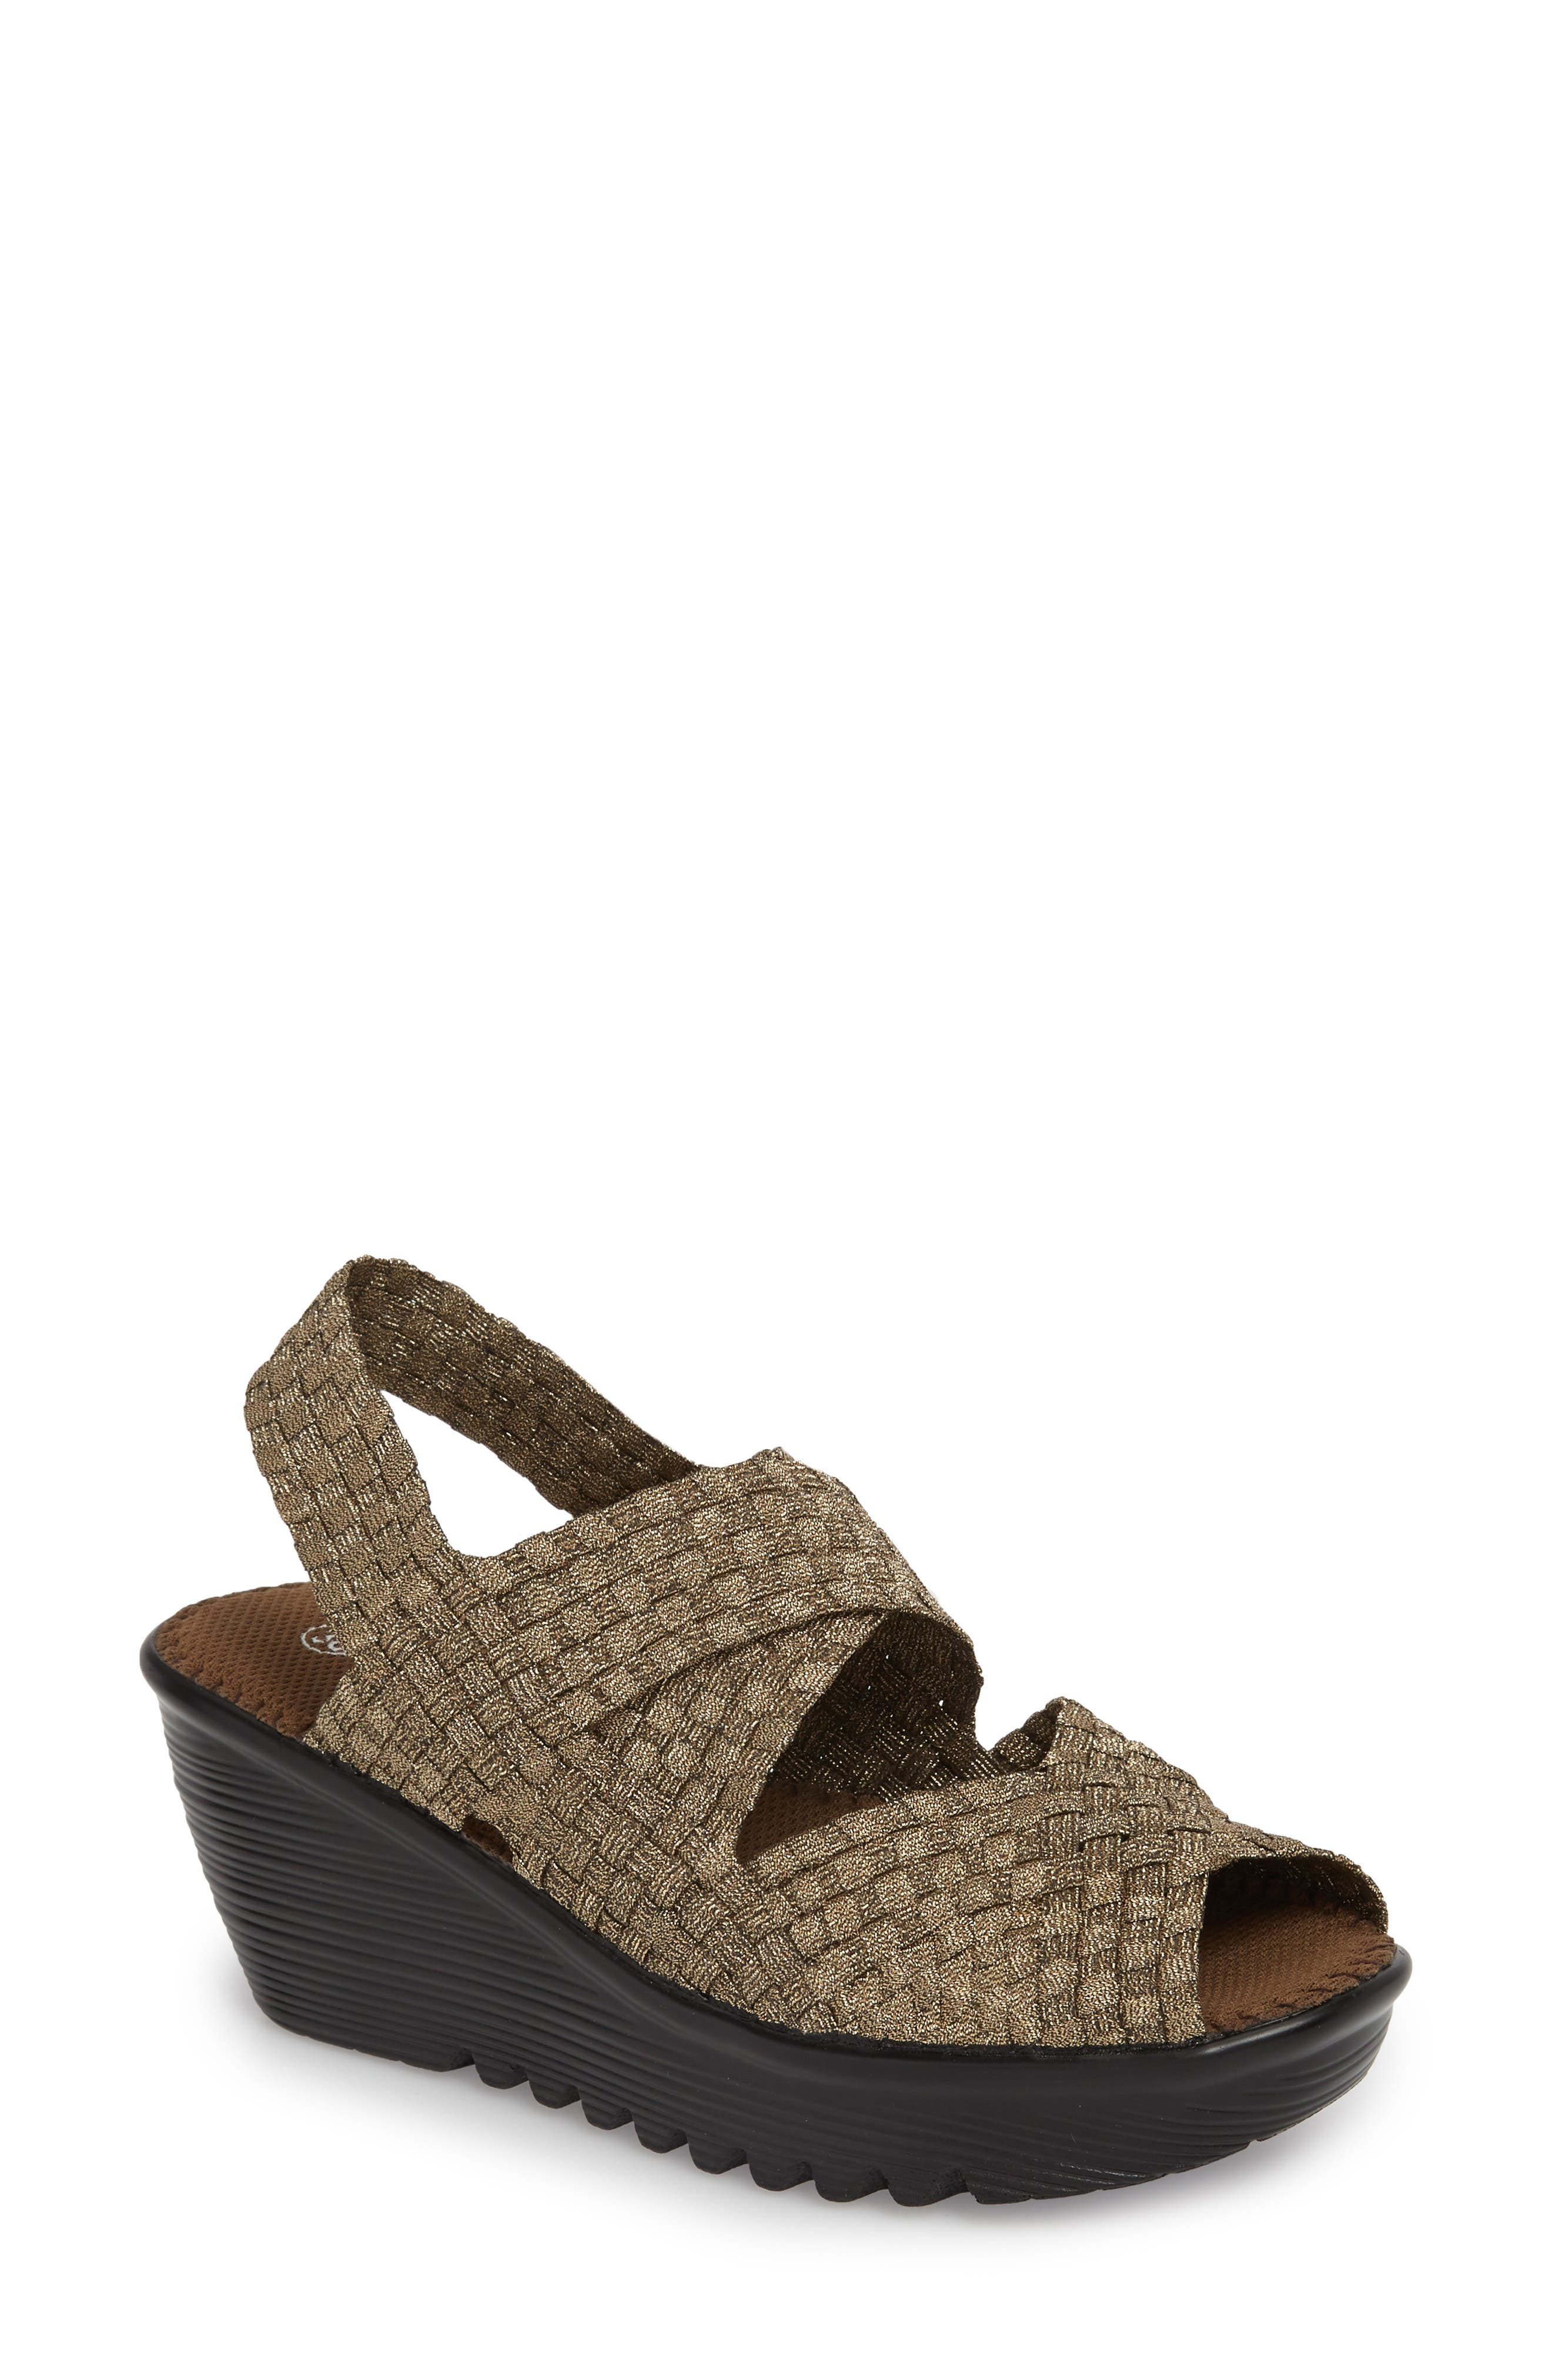 Jessica Wedge Sandal,                             Main thumbnail 1, color,                             Bronze Fabric